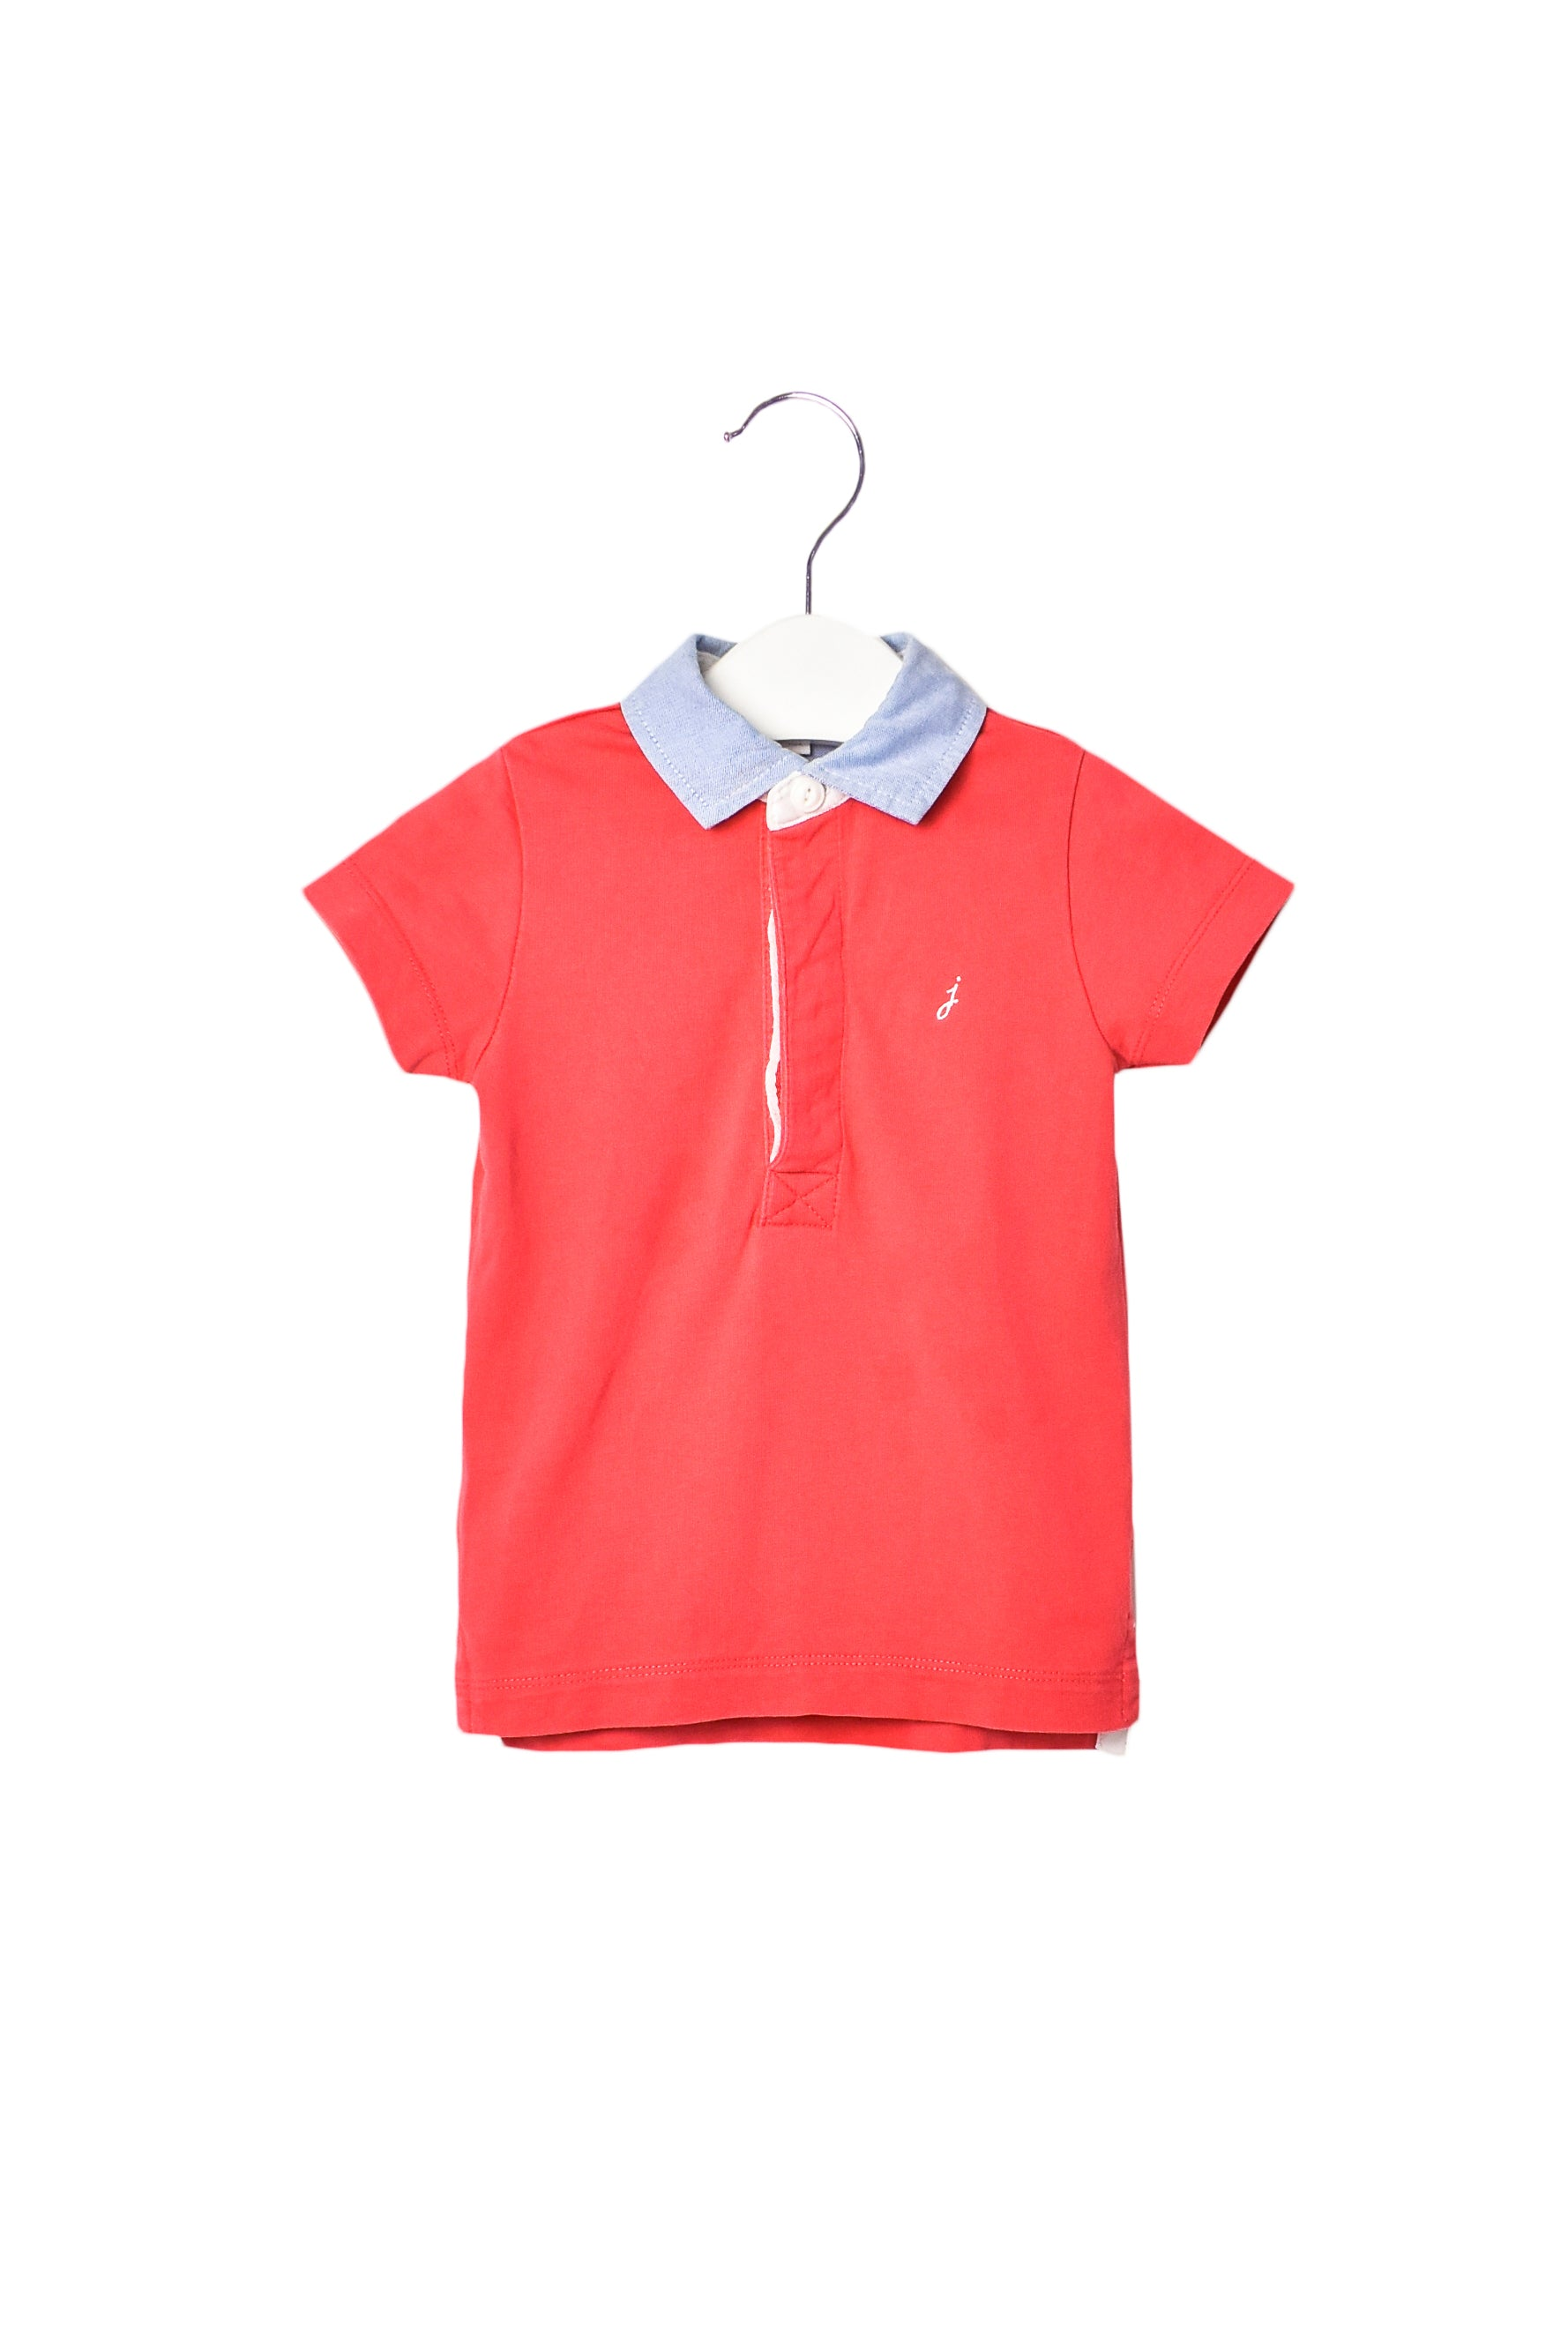 10007853 Jacadi Kids~Polo 2T at Retykle